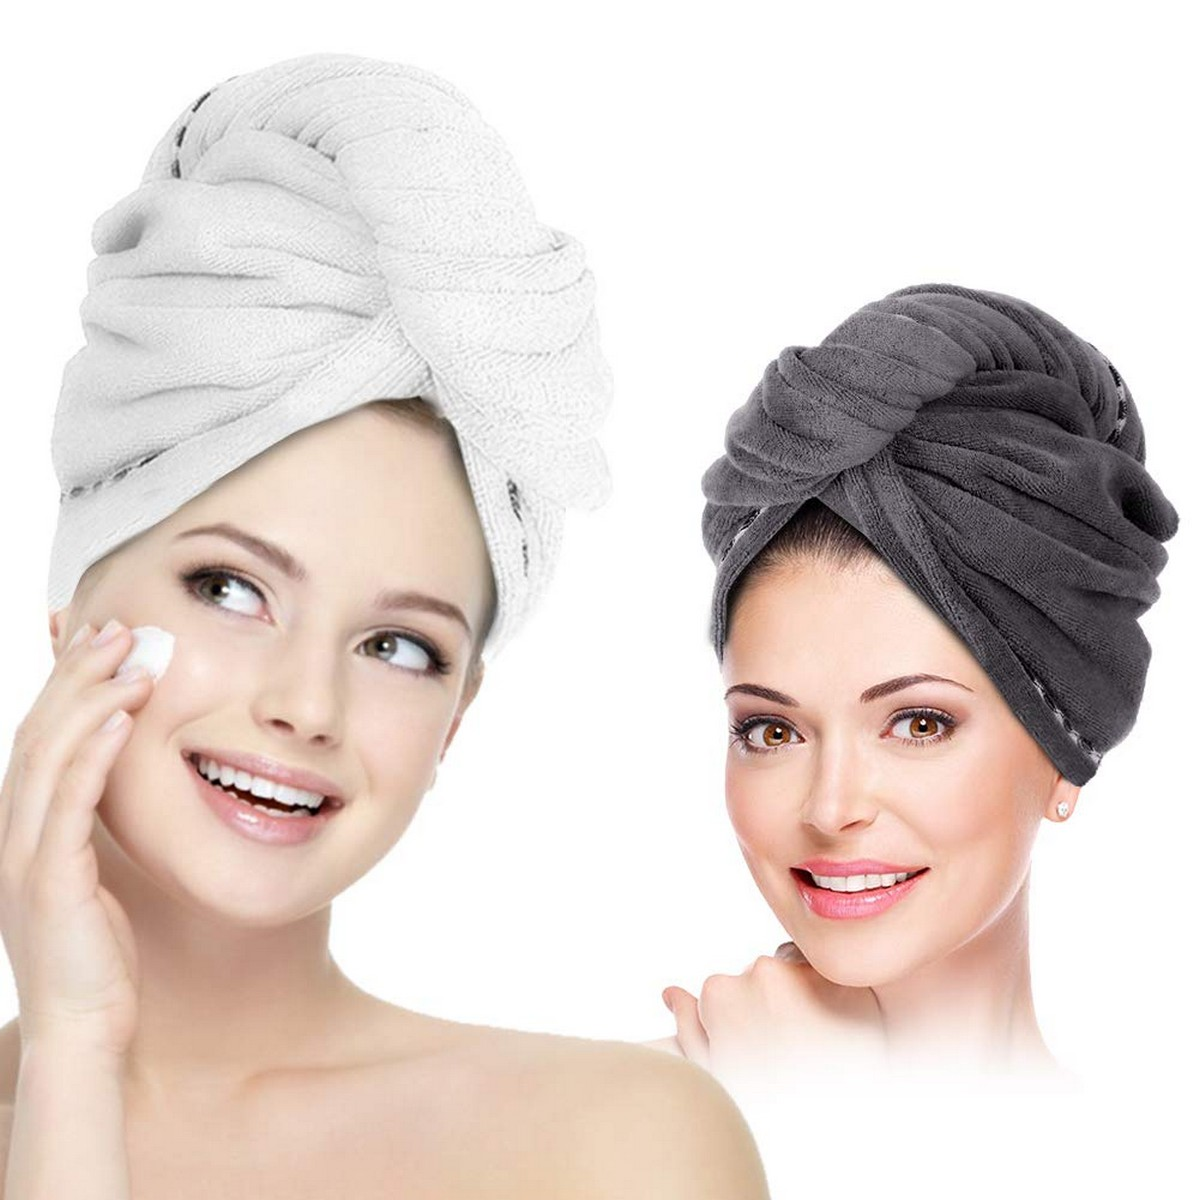 Hair Towel, Hair Drying Towels Quick Dry Hair Hat Headband & Wrapped Bath Cap with Buttons Bath Loop Fasten Drying Shower Head Towels for Women Towel Girl Wet/Thick Hair (Pack of 2)